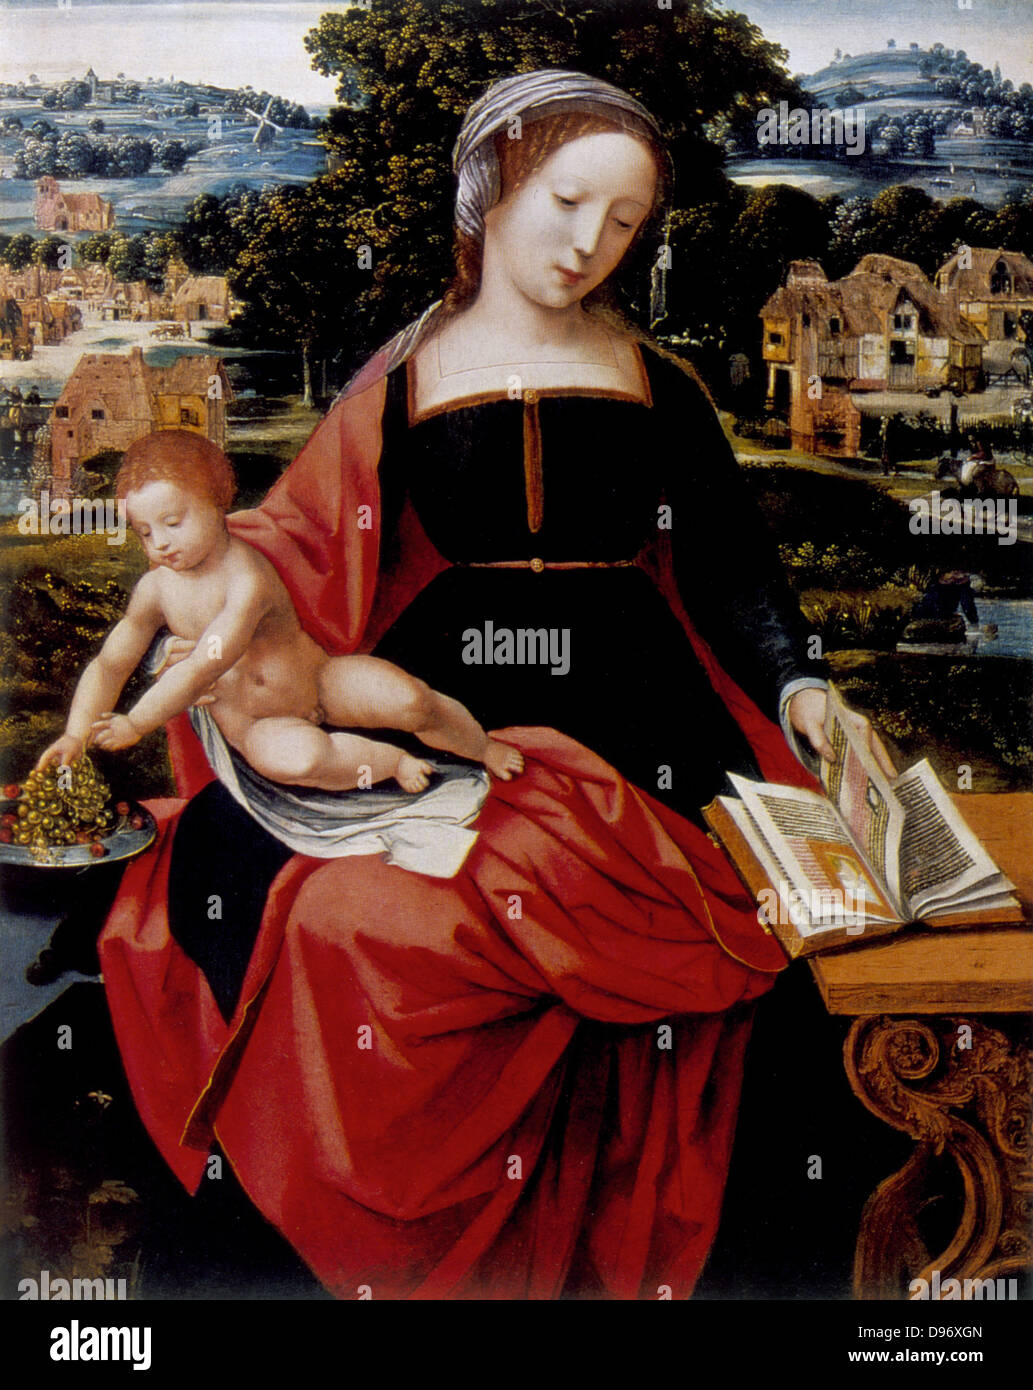 Virgin and Child' Jesus on Mary's lap leans to take grapes from dish while Mary looks at illuminated devotional - Stock Image